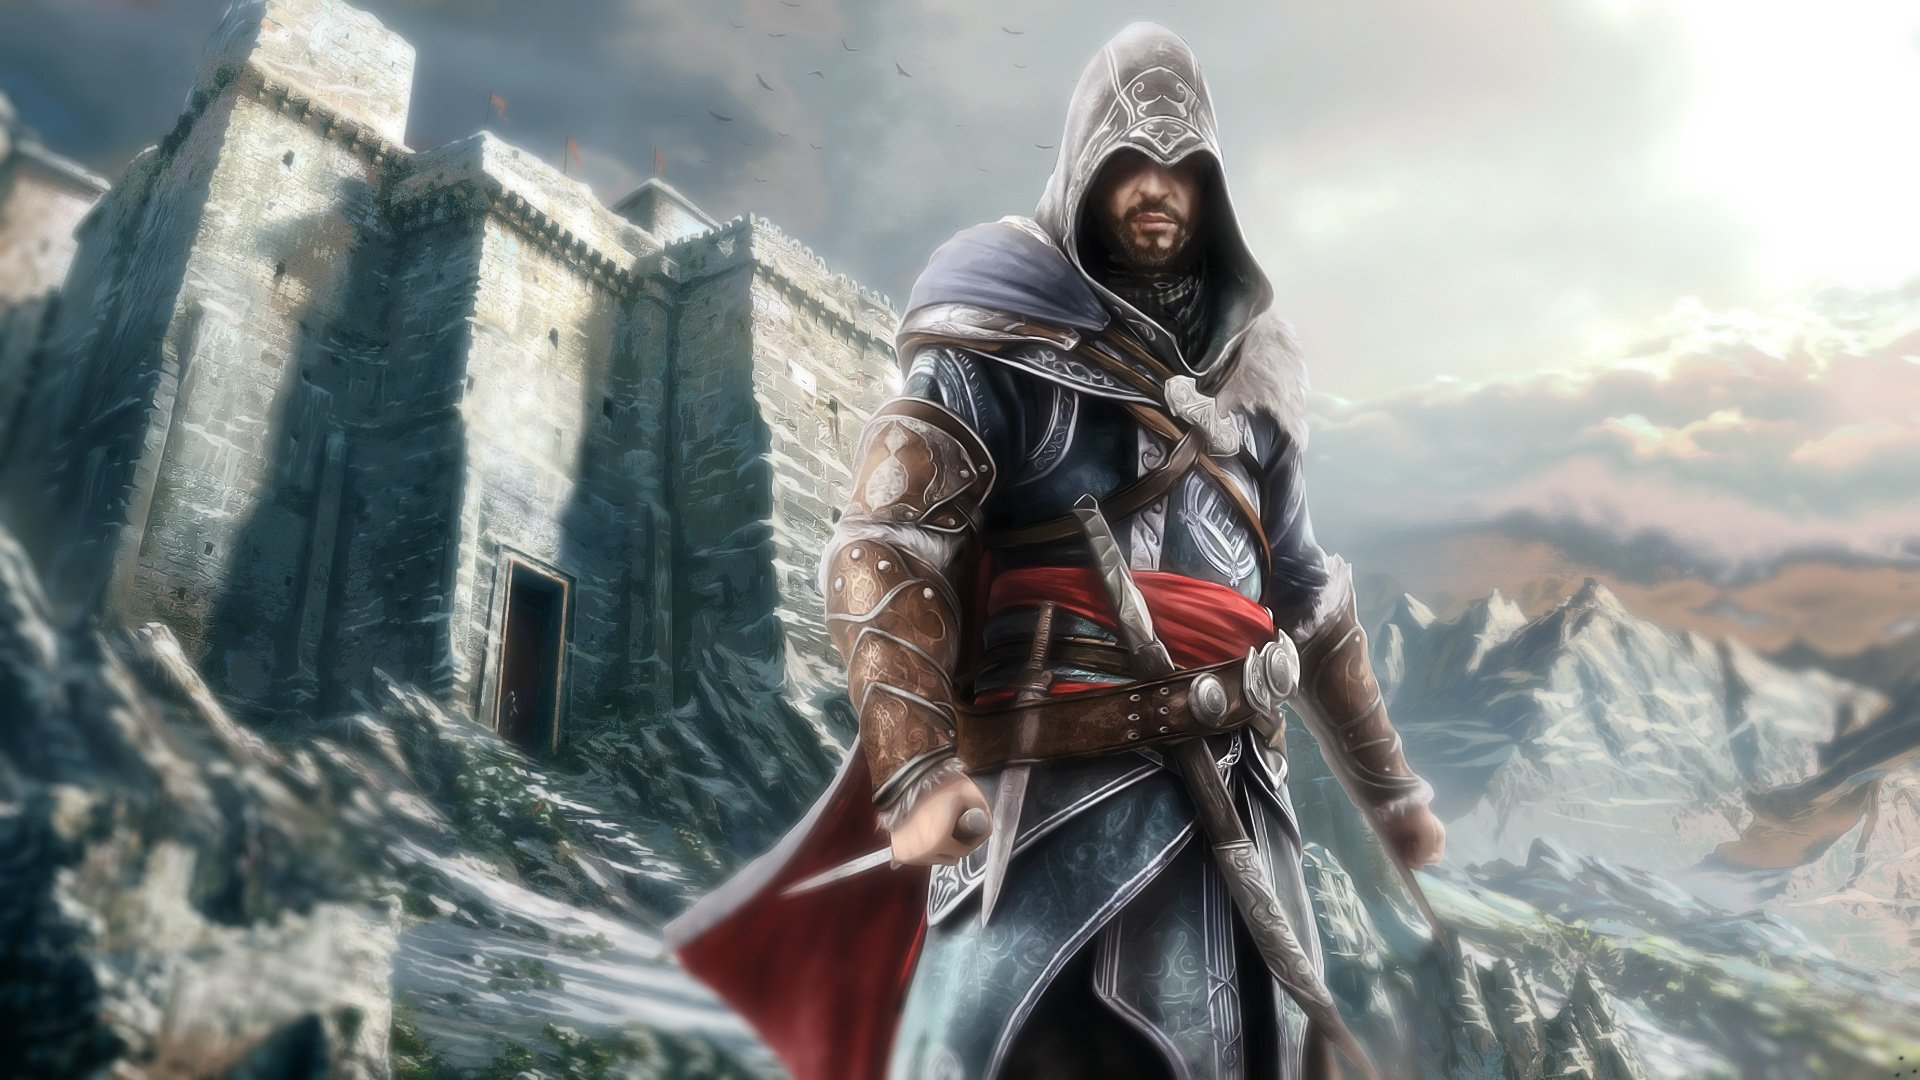 Assassin S Creed Revelations Hd Wallpaper Background Image